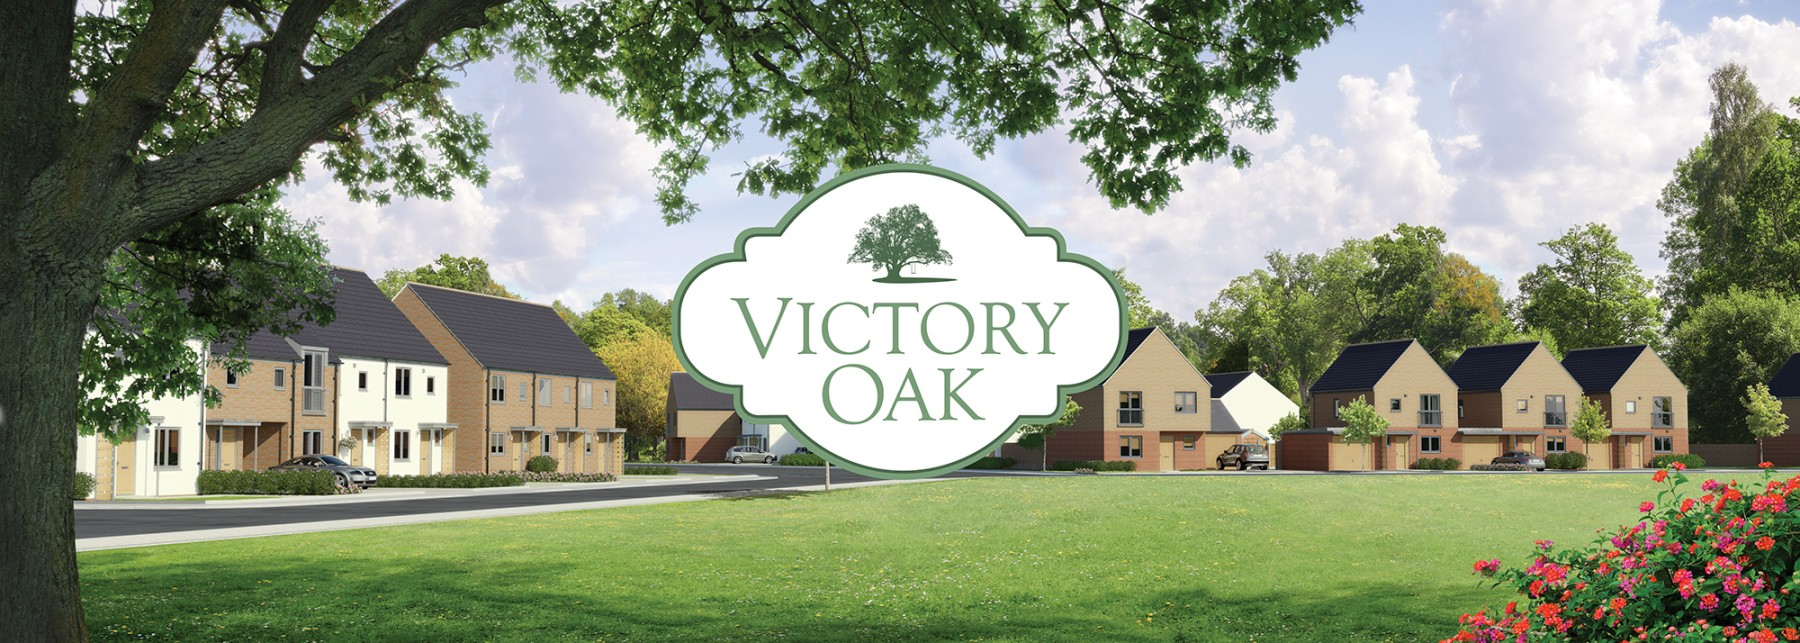 Architectural Rendering Dorset | Victory Oak Housing Development